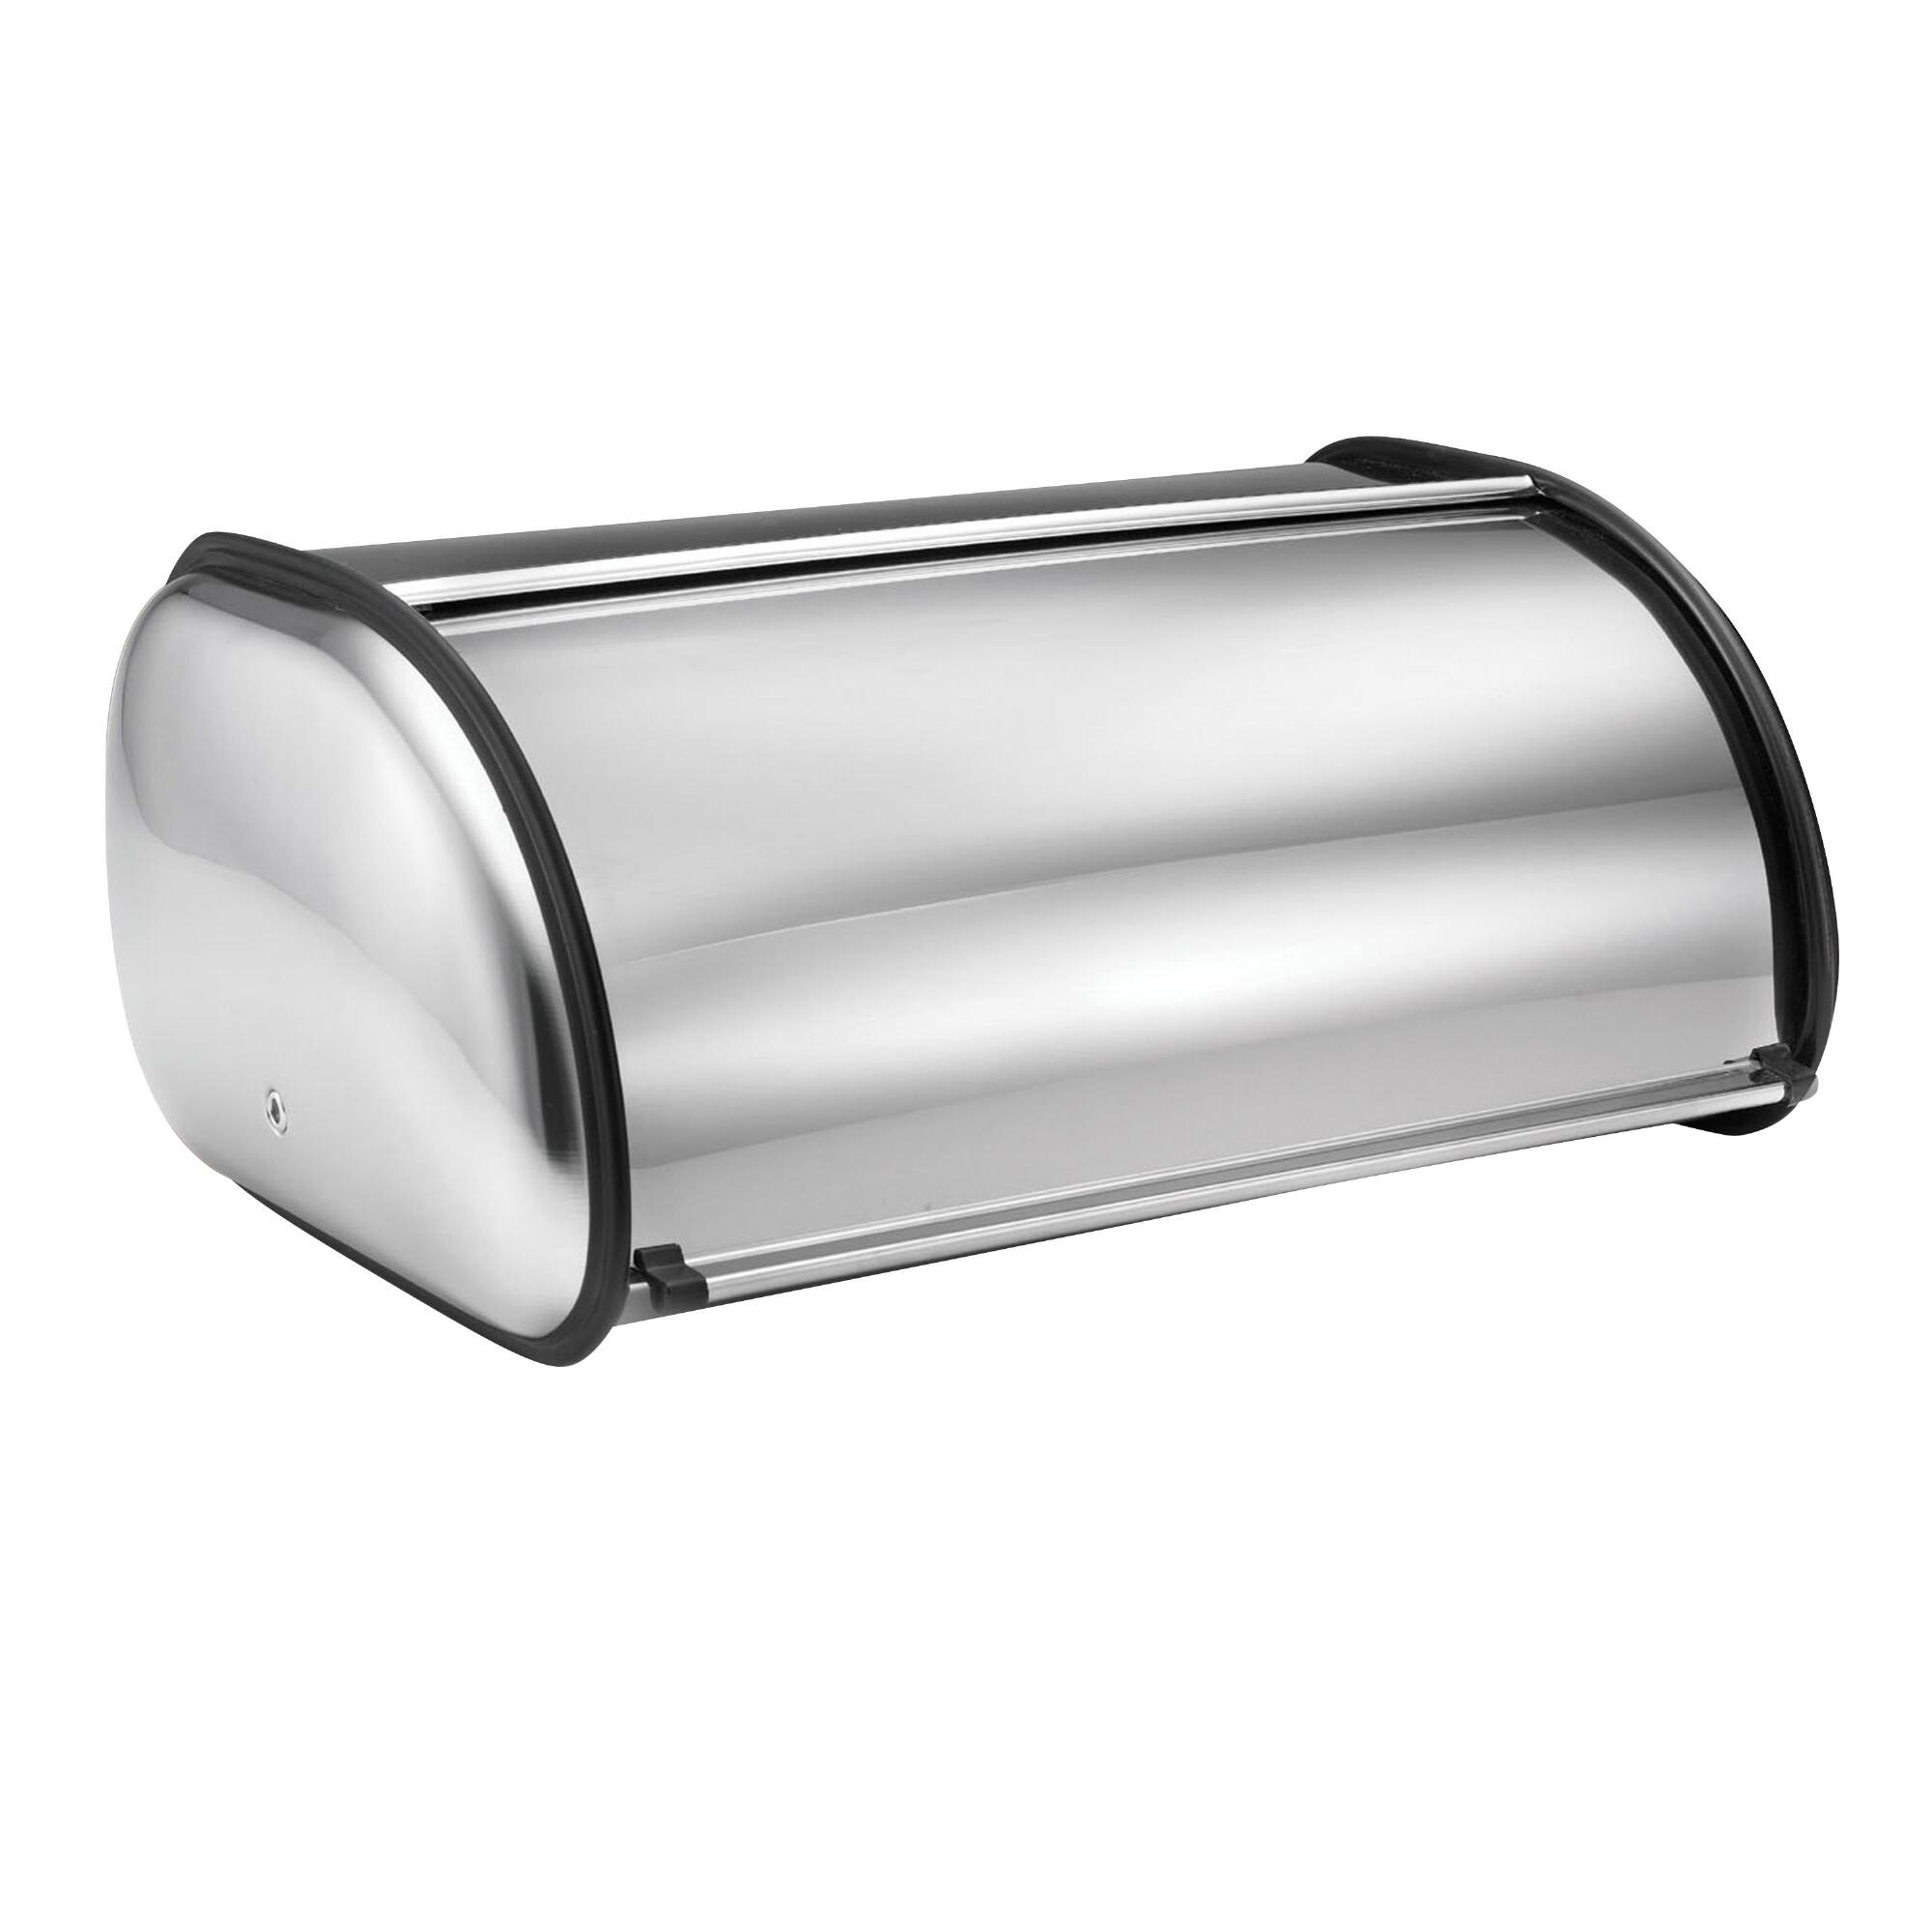 Stainless Steel Bread Bin: Silver by World Market